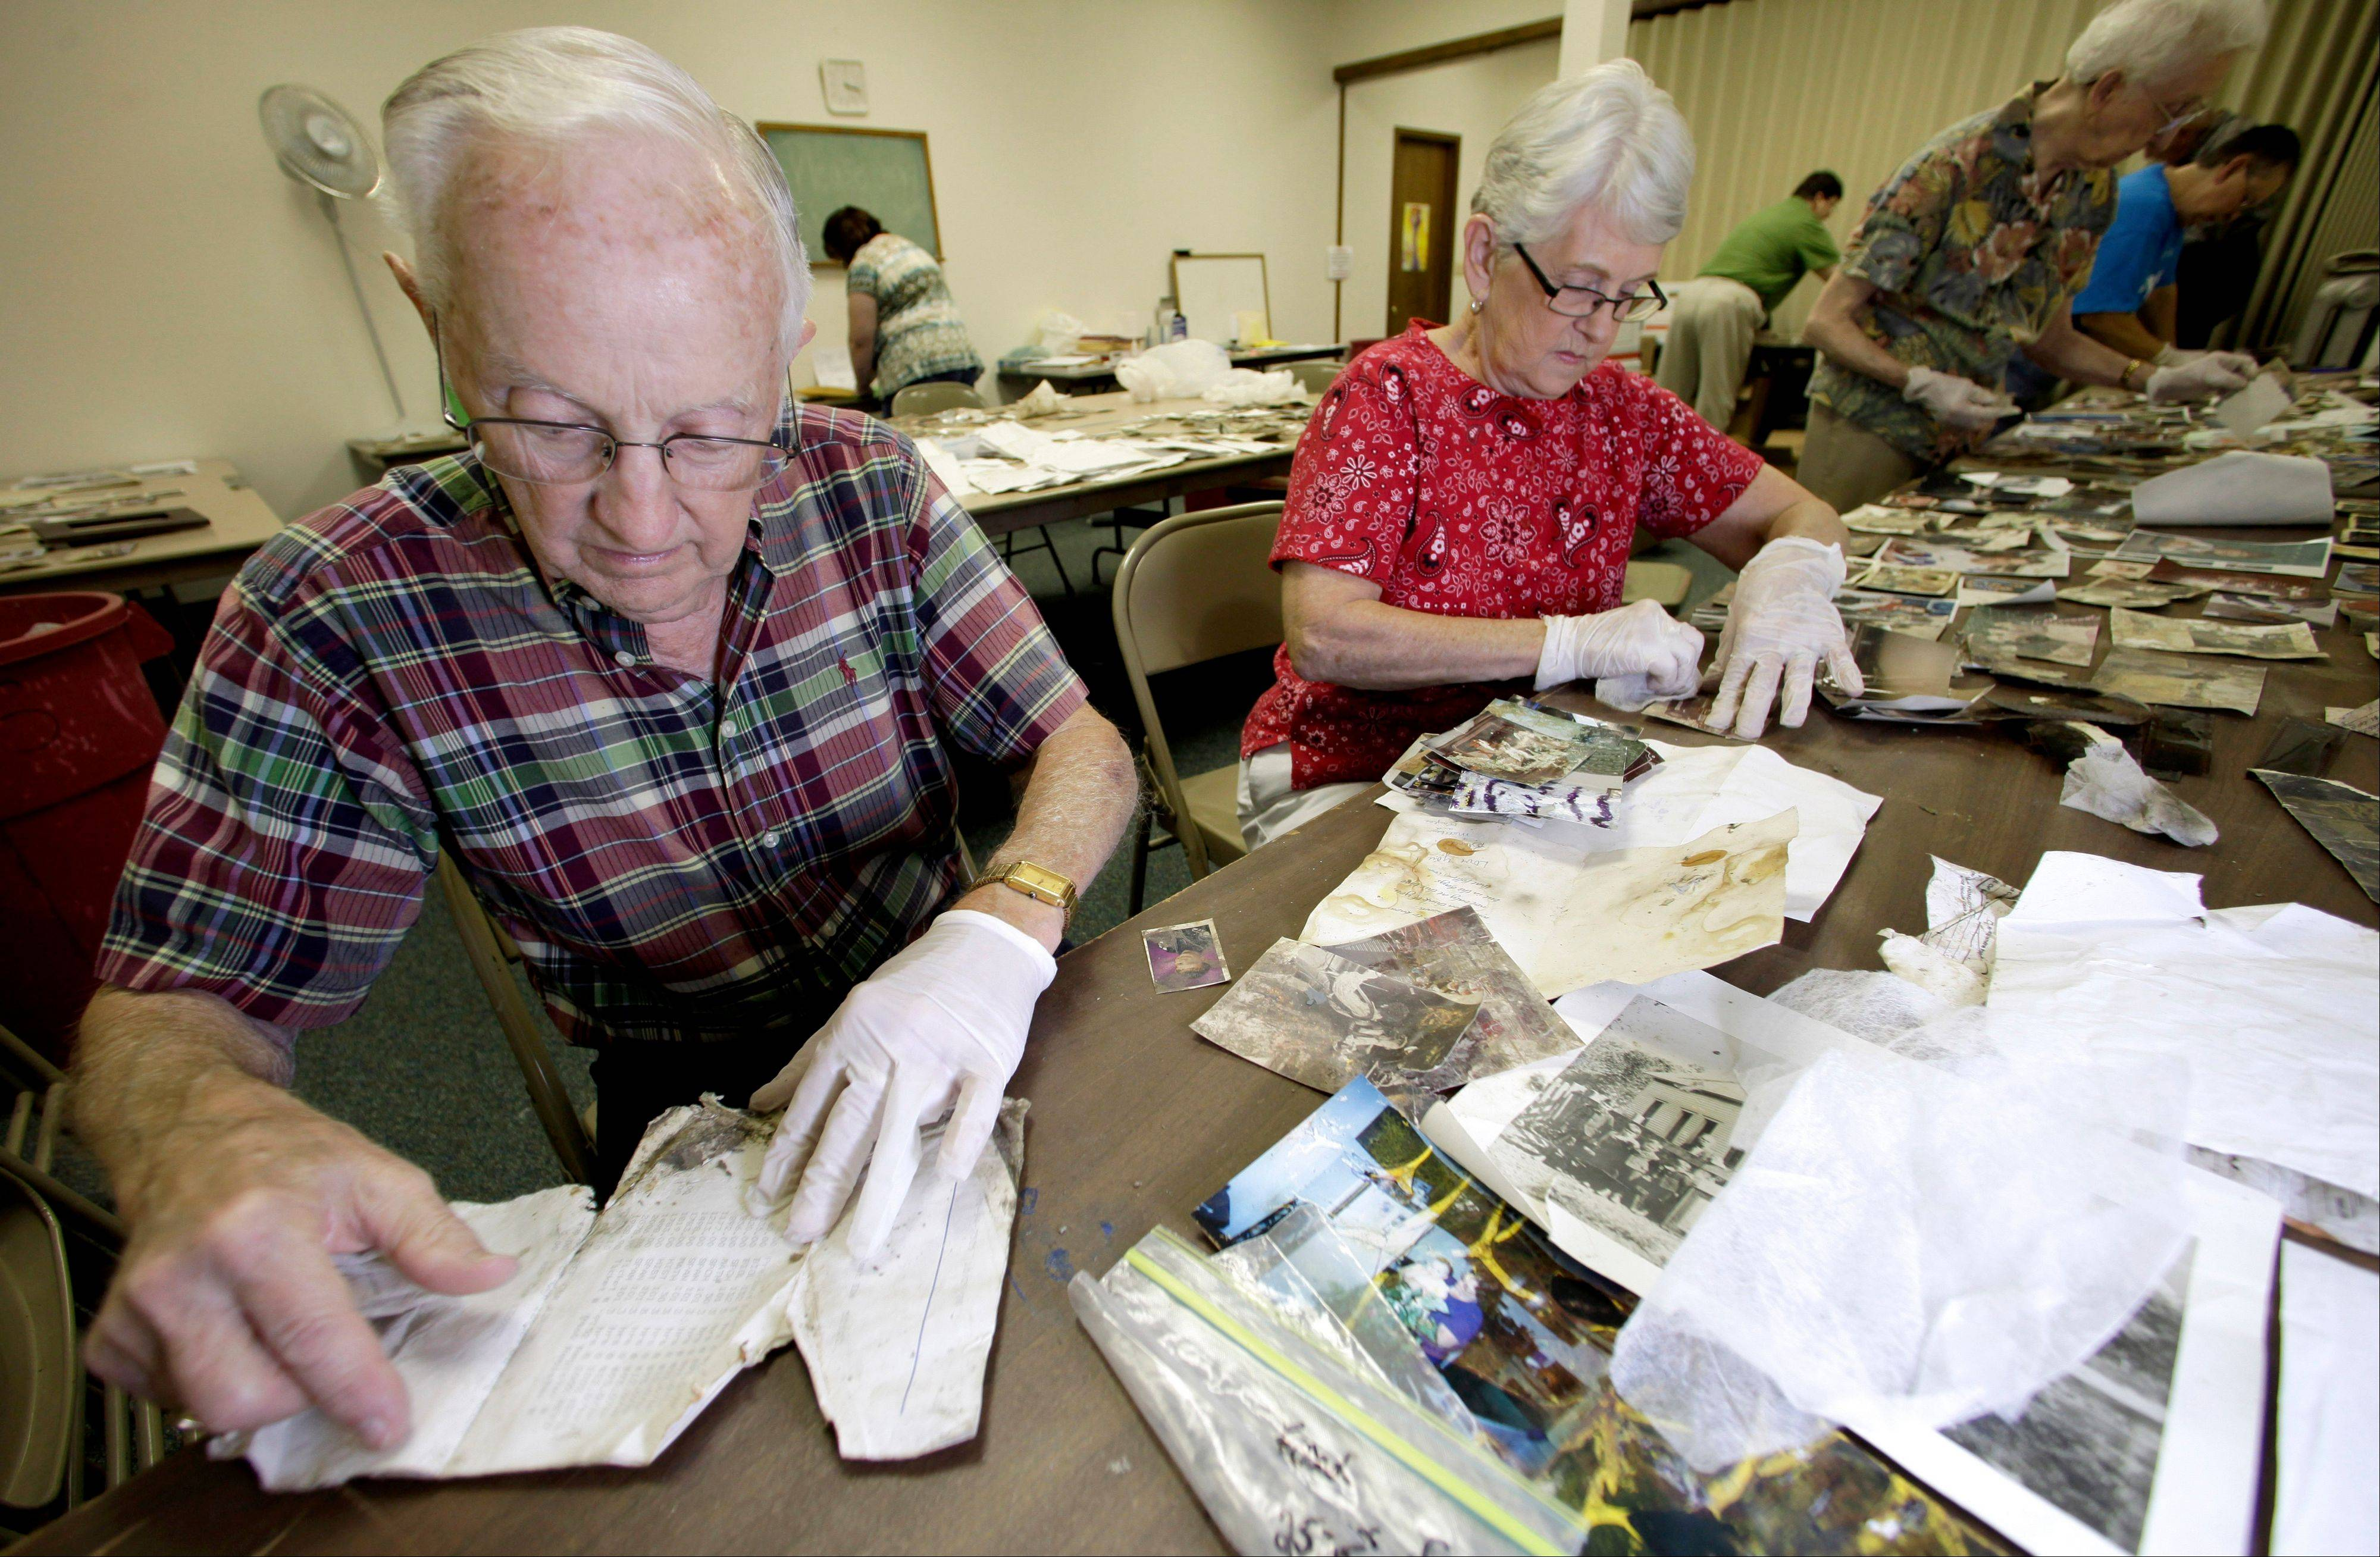 Glenn and Margaret Hagenbaumer, volunteers at the First Baptist Church in Carthage, Mo., clean and sort photos and other personal documents found among rubble after a powerful EF-5 tornado destroyed a large swath of nearby Joplin, Mo. on May 22, 2011. The church has taken on the task of preserving thousands of lost photos and reuniting them with their owners.